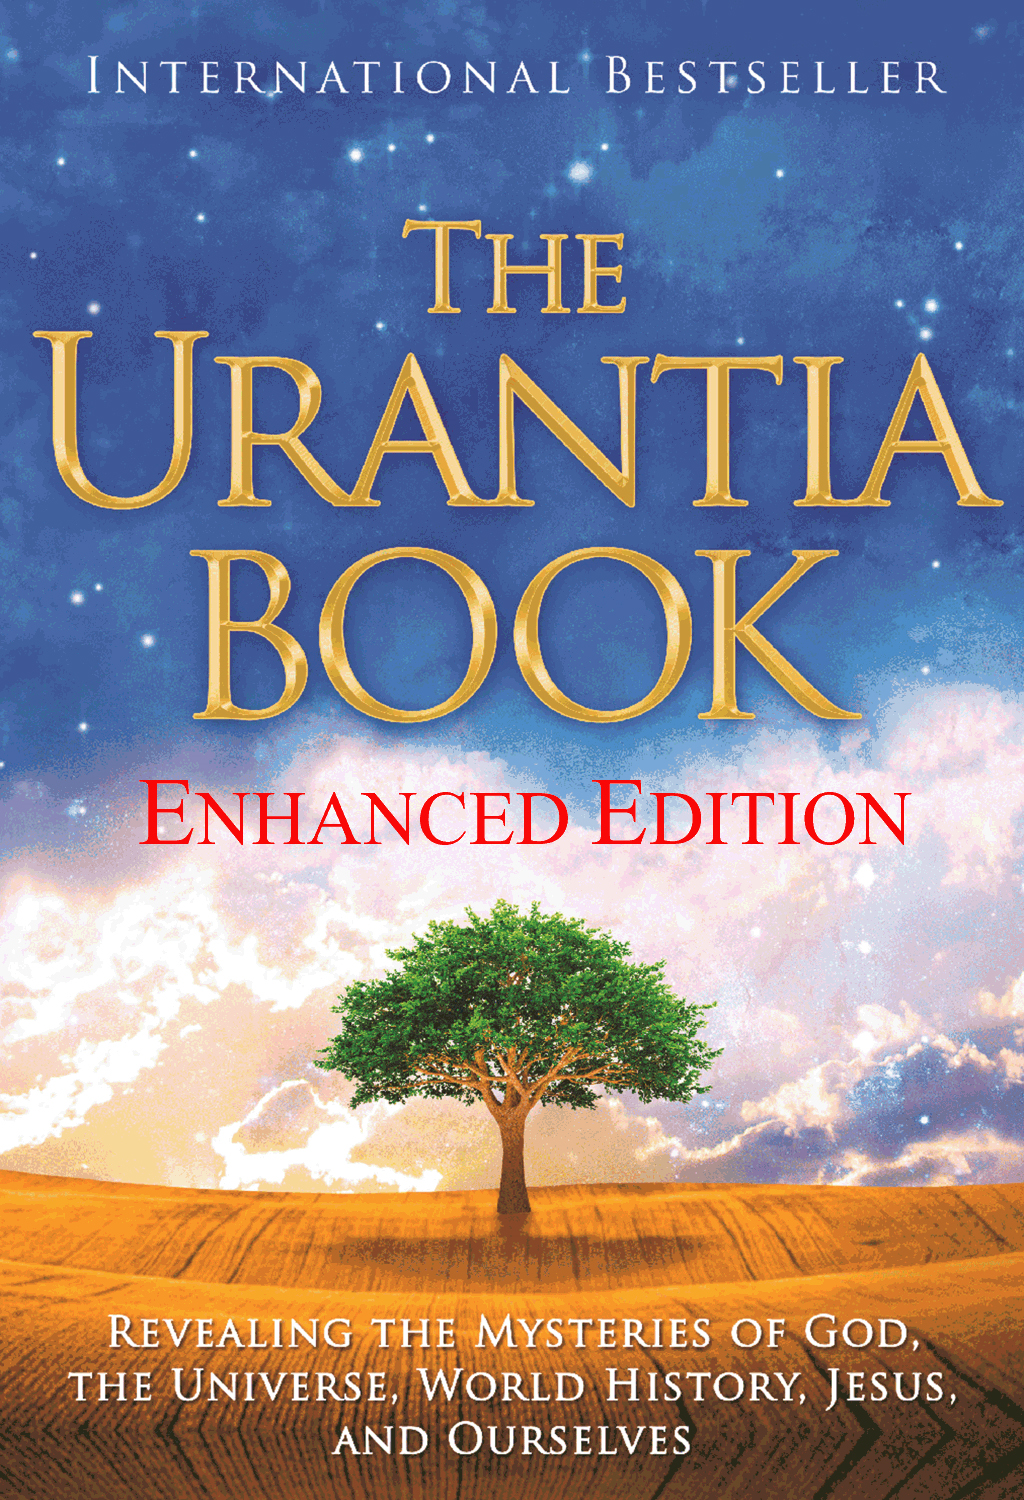 The Urantia Book – Enhanced Edition